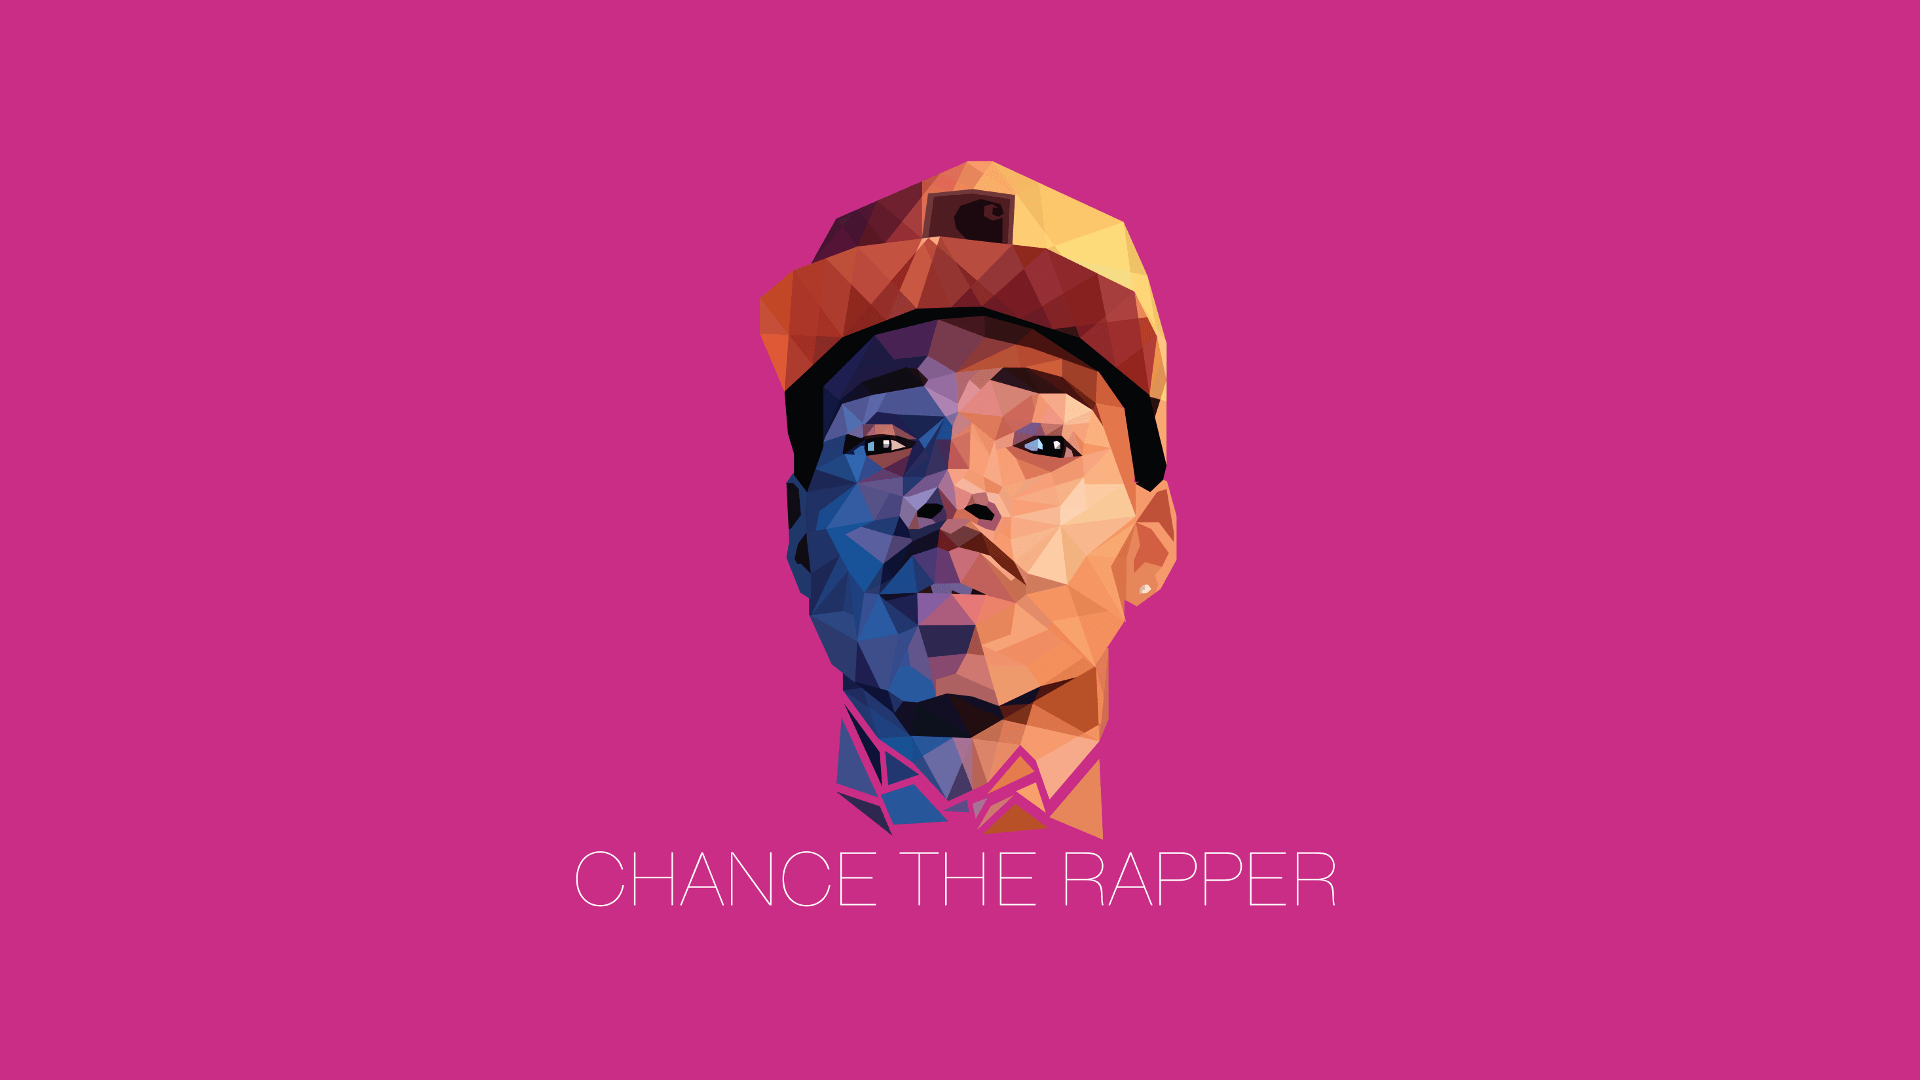 Chance The Rapper Cartoon Wallpapers Top Free Chance The Rapper